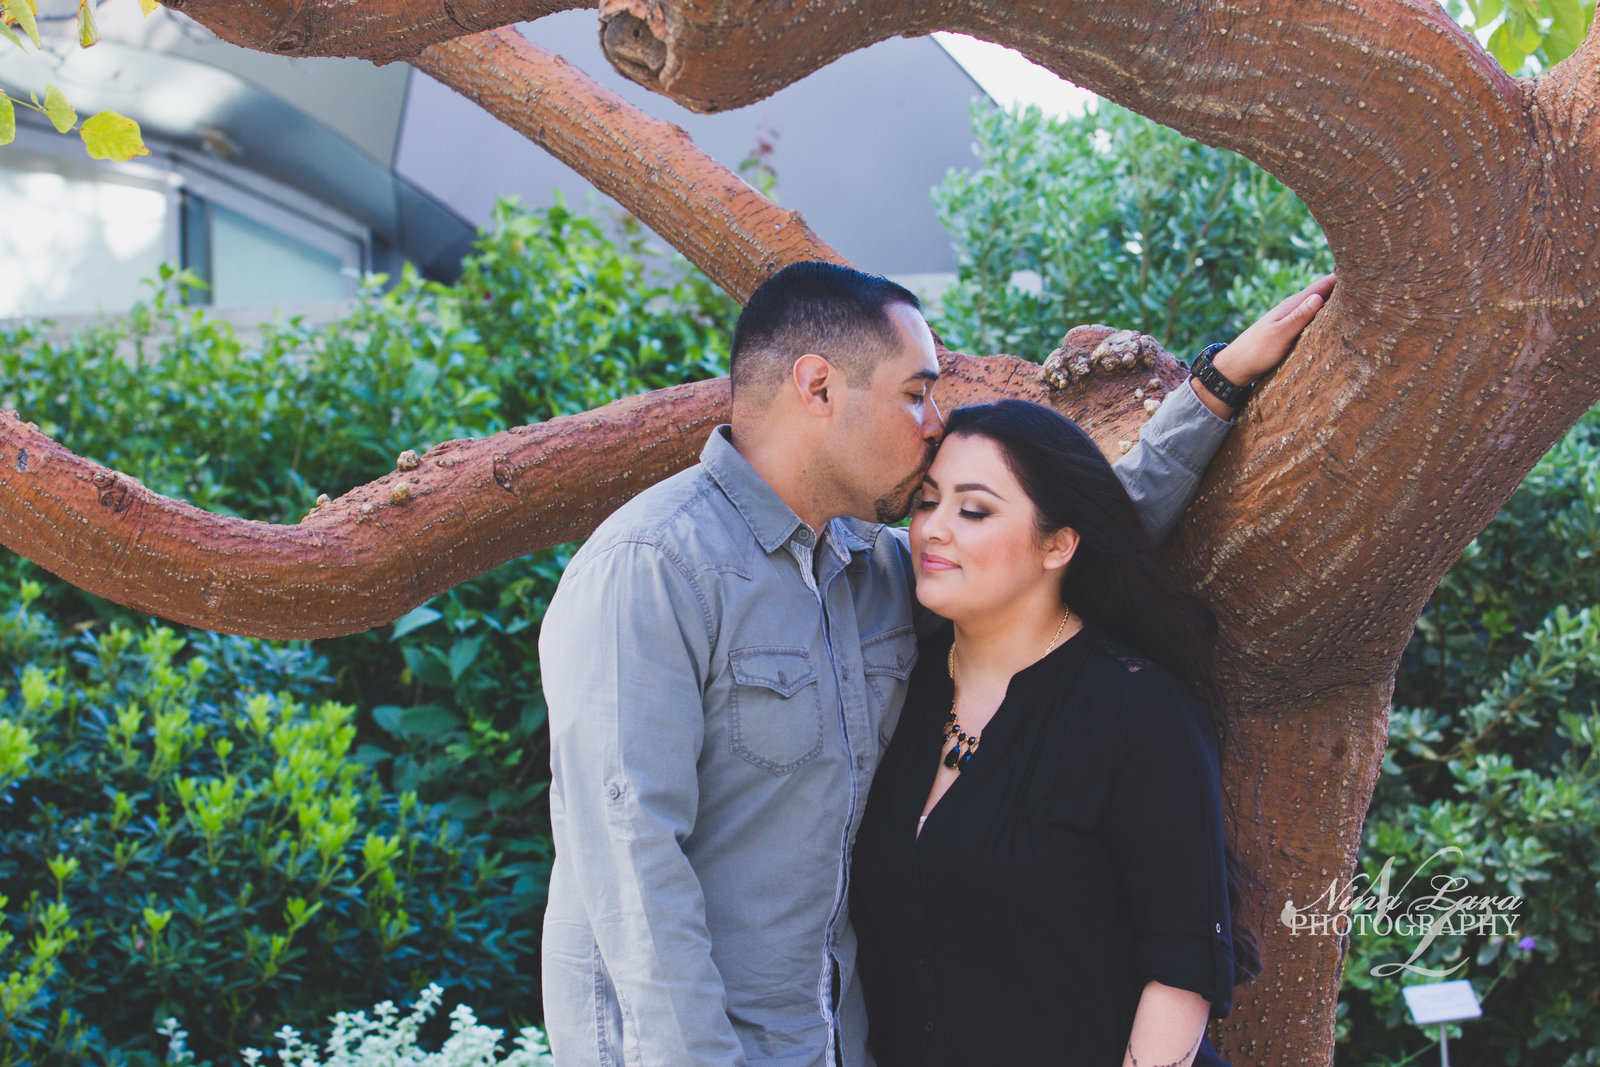 003-Los Angeles Engagment Session